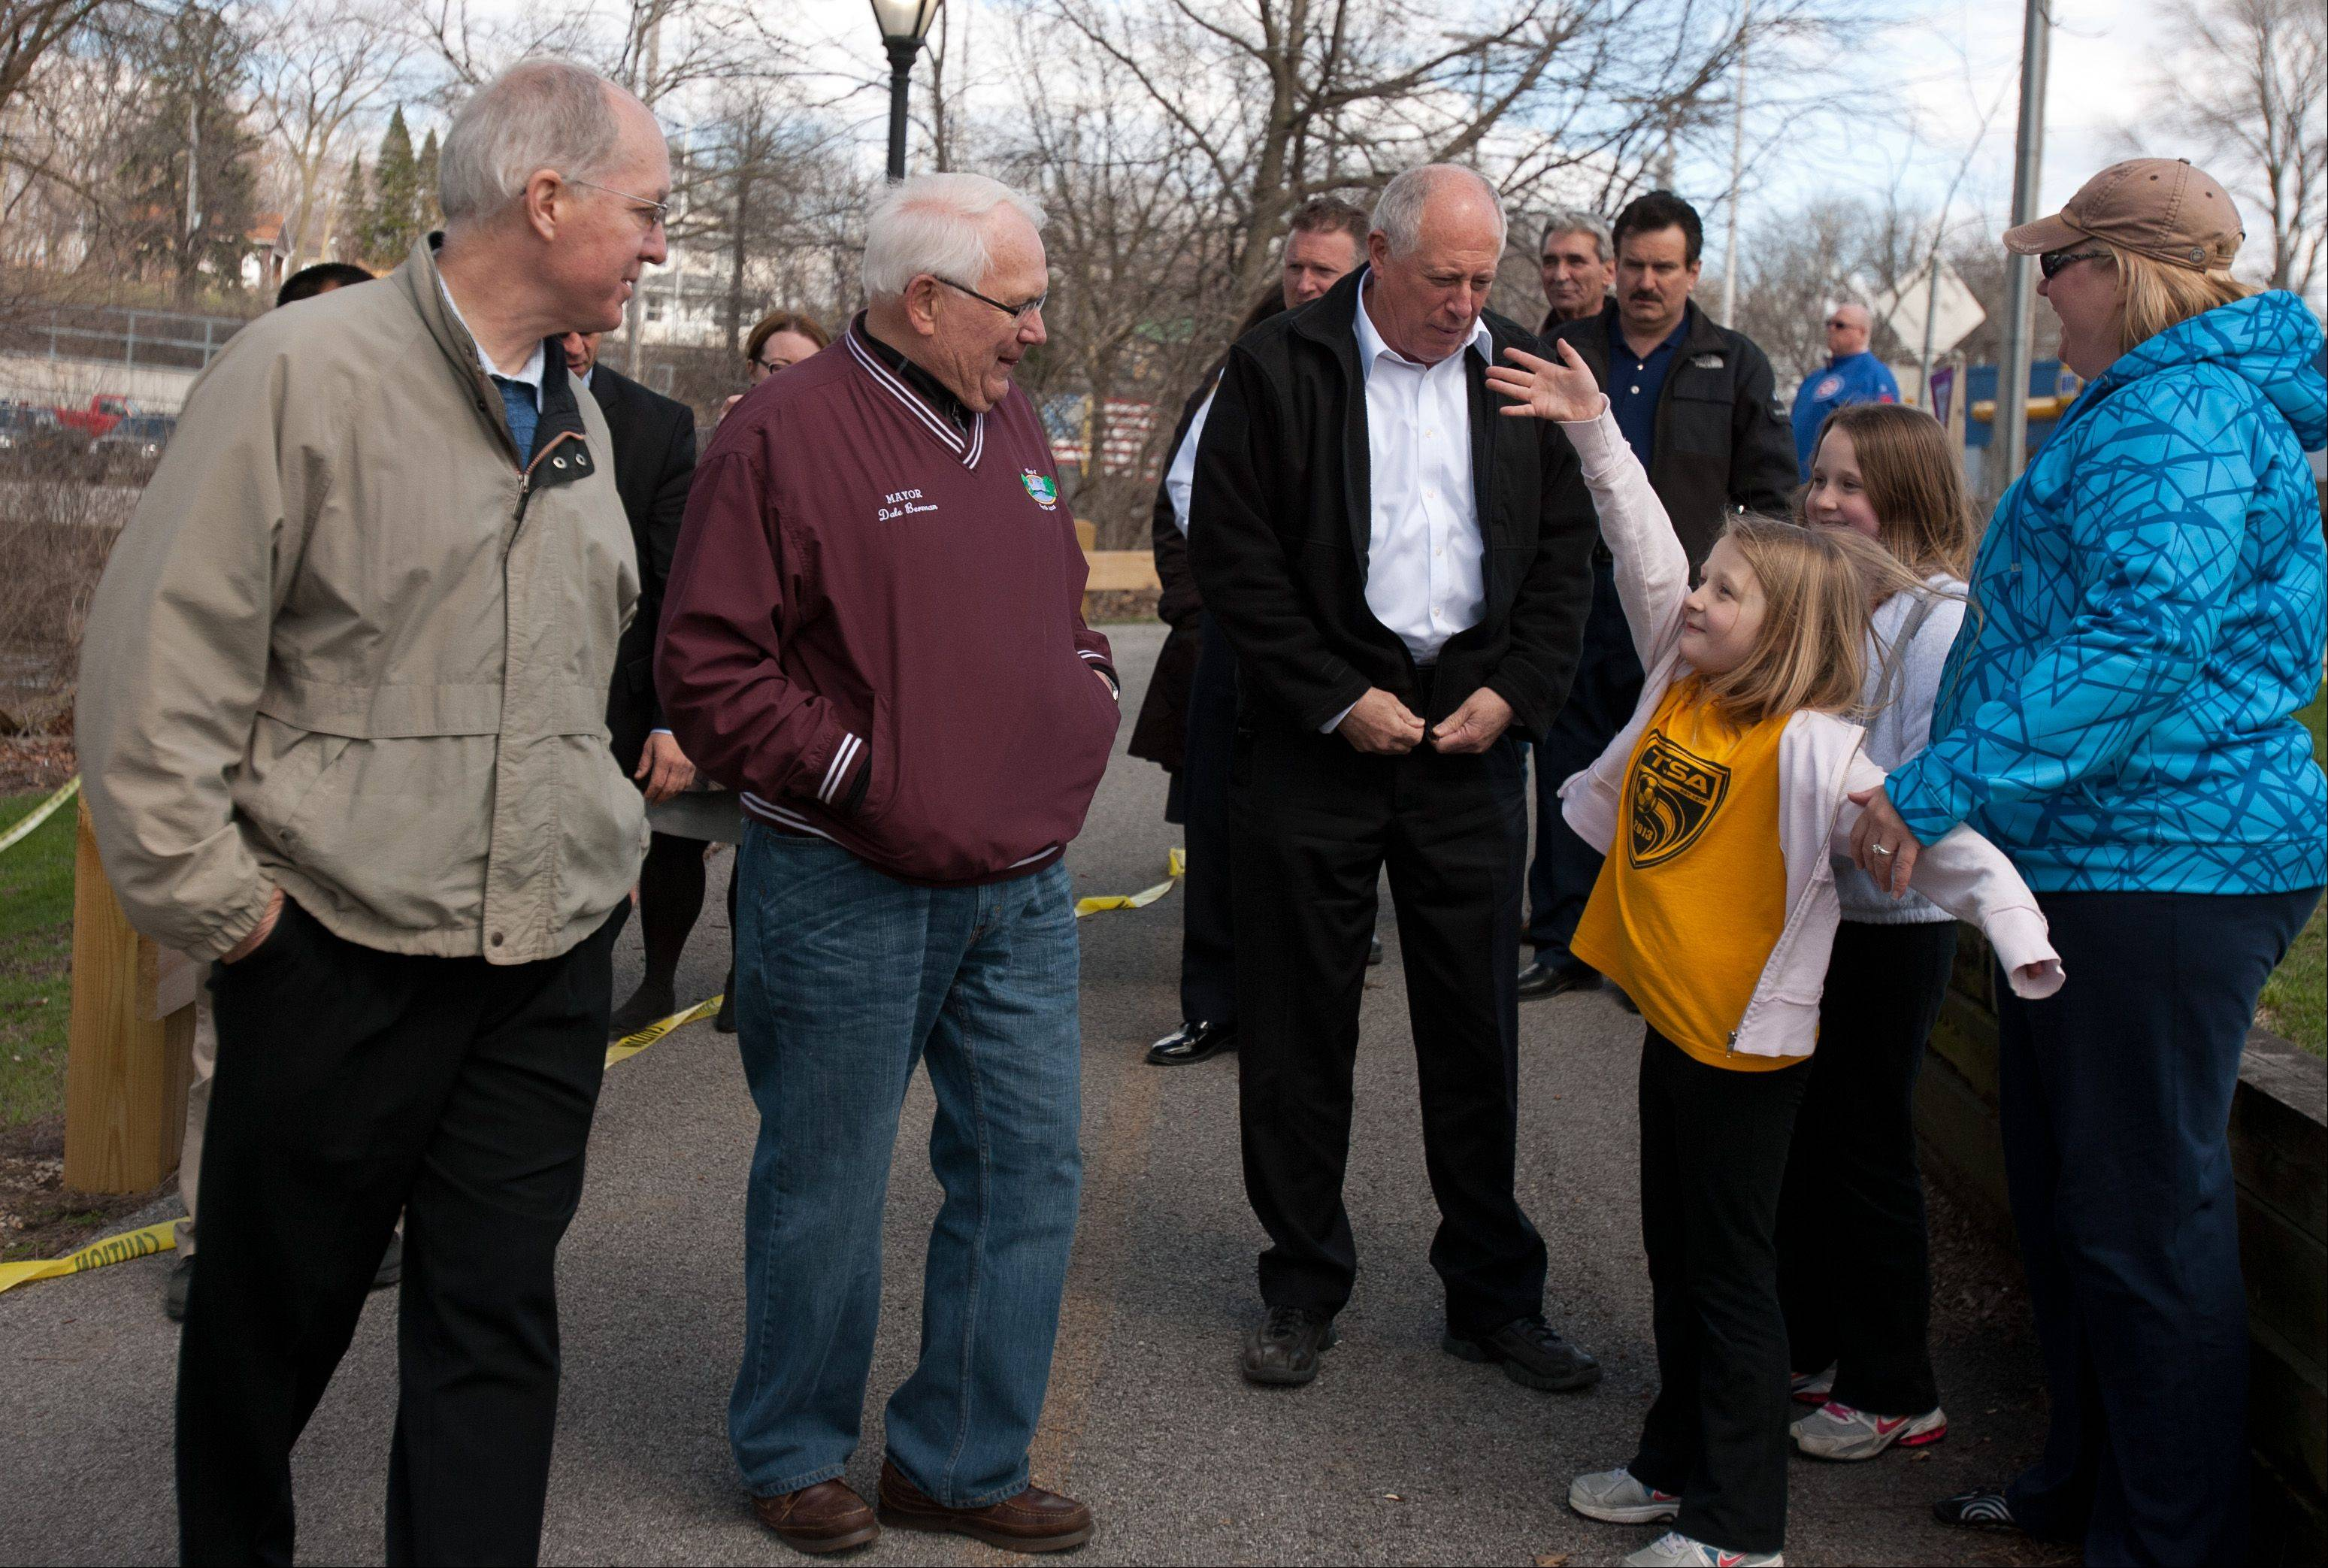 Gov. Pat Quinn addresses flooding concerns throughout the state, before a press conference along the Fox River in North Aurora. U.S Rep. Bill Foster, left, and North Aurora Village President Dale Berman, center, attended the event.